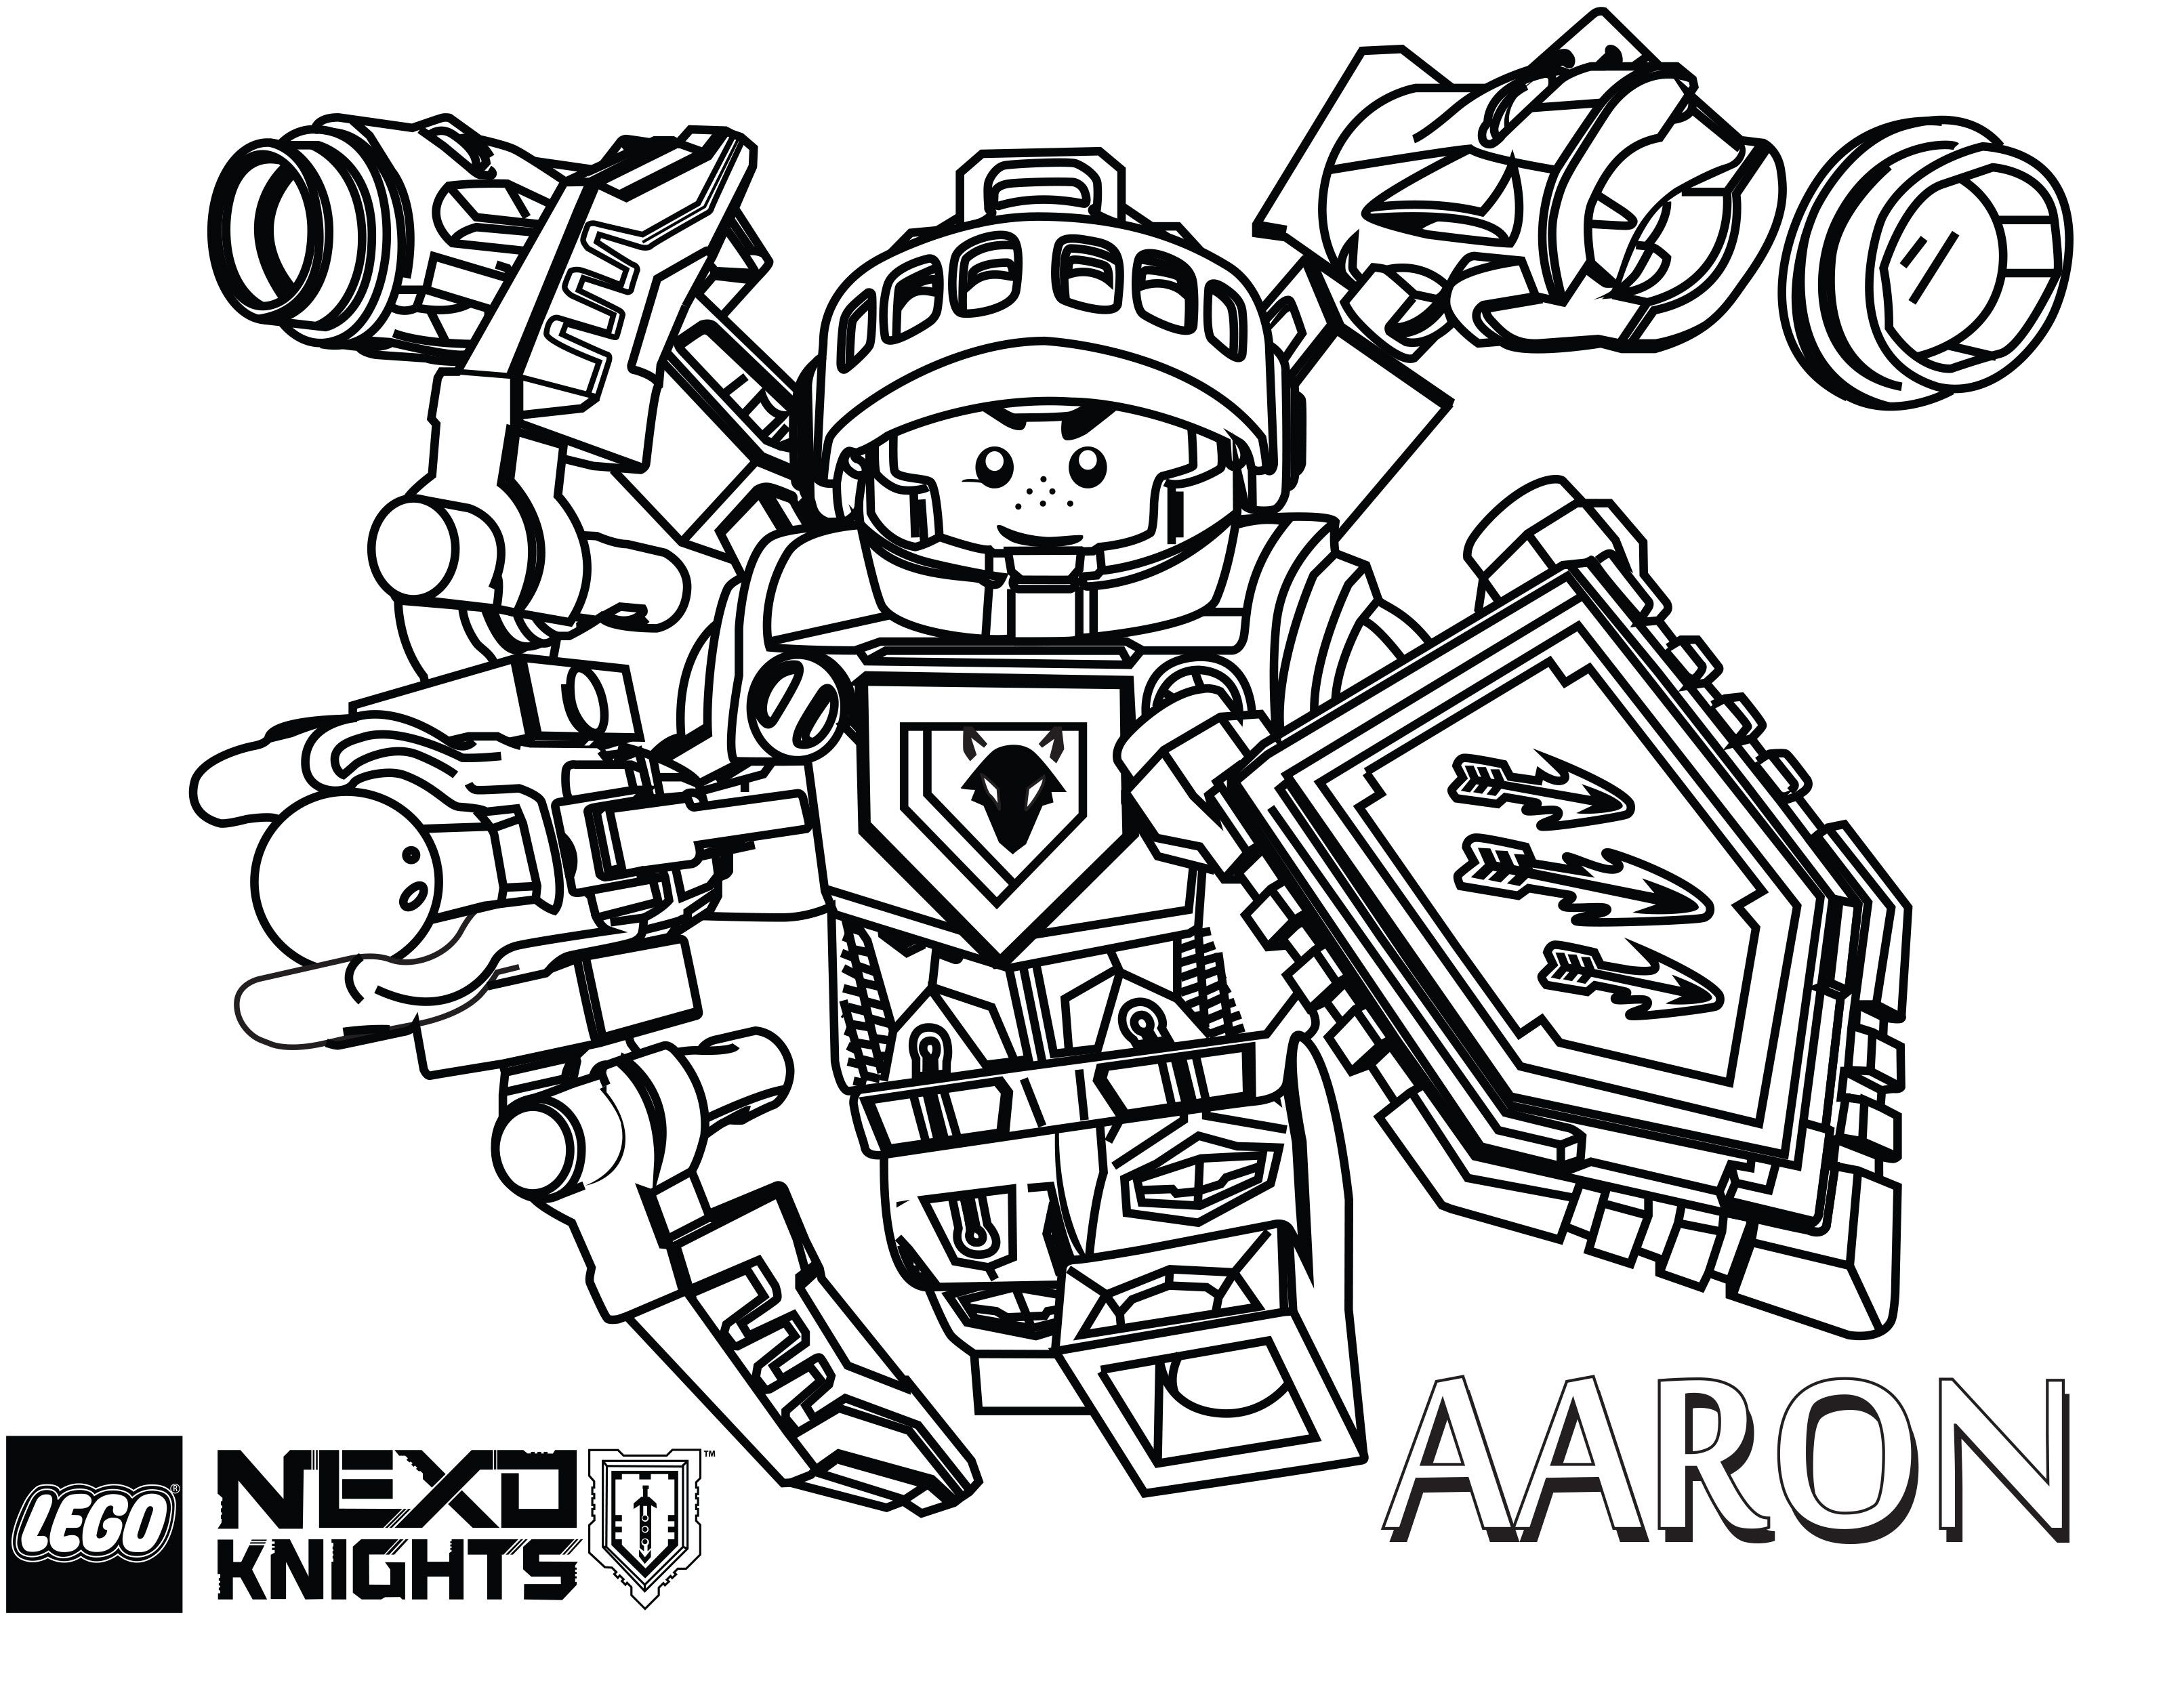 Lego Nexo Knights Coloring Pages Free Printable Lego Nexo Knights Color Sheets Lego Coloring Pages Lego Coloring Avengers Coloring Pages